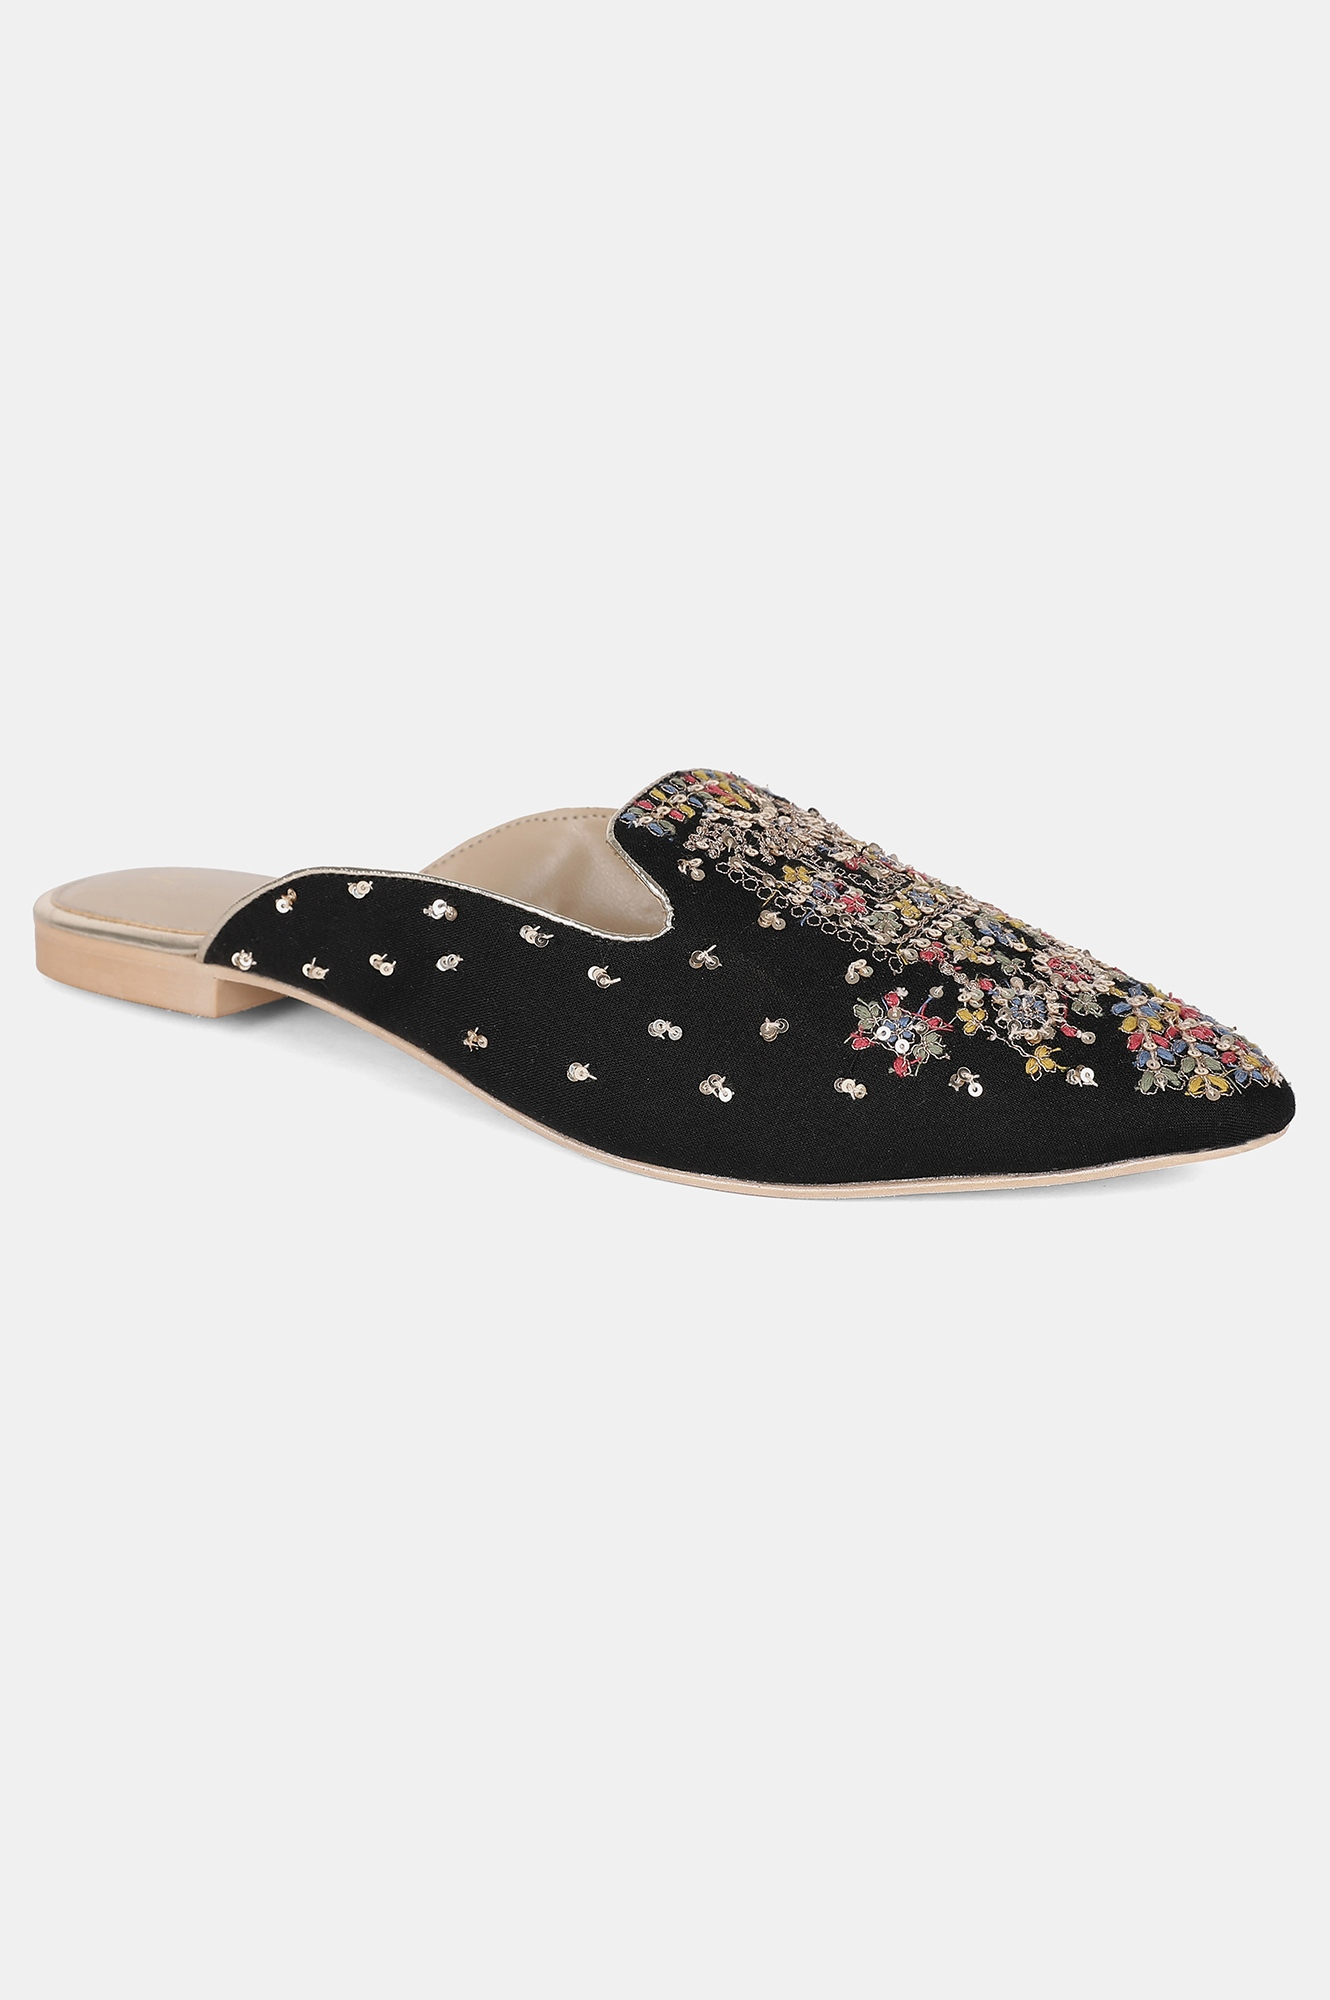 W | Black Pointed Toe Embroidered Flat